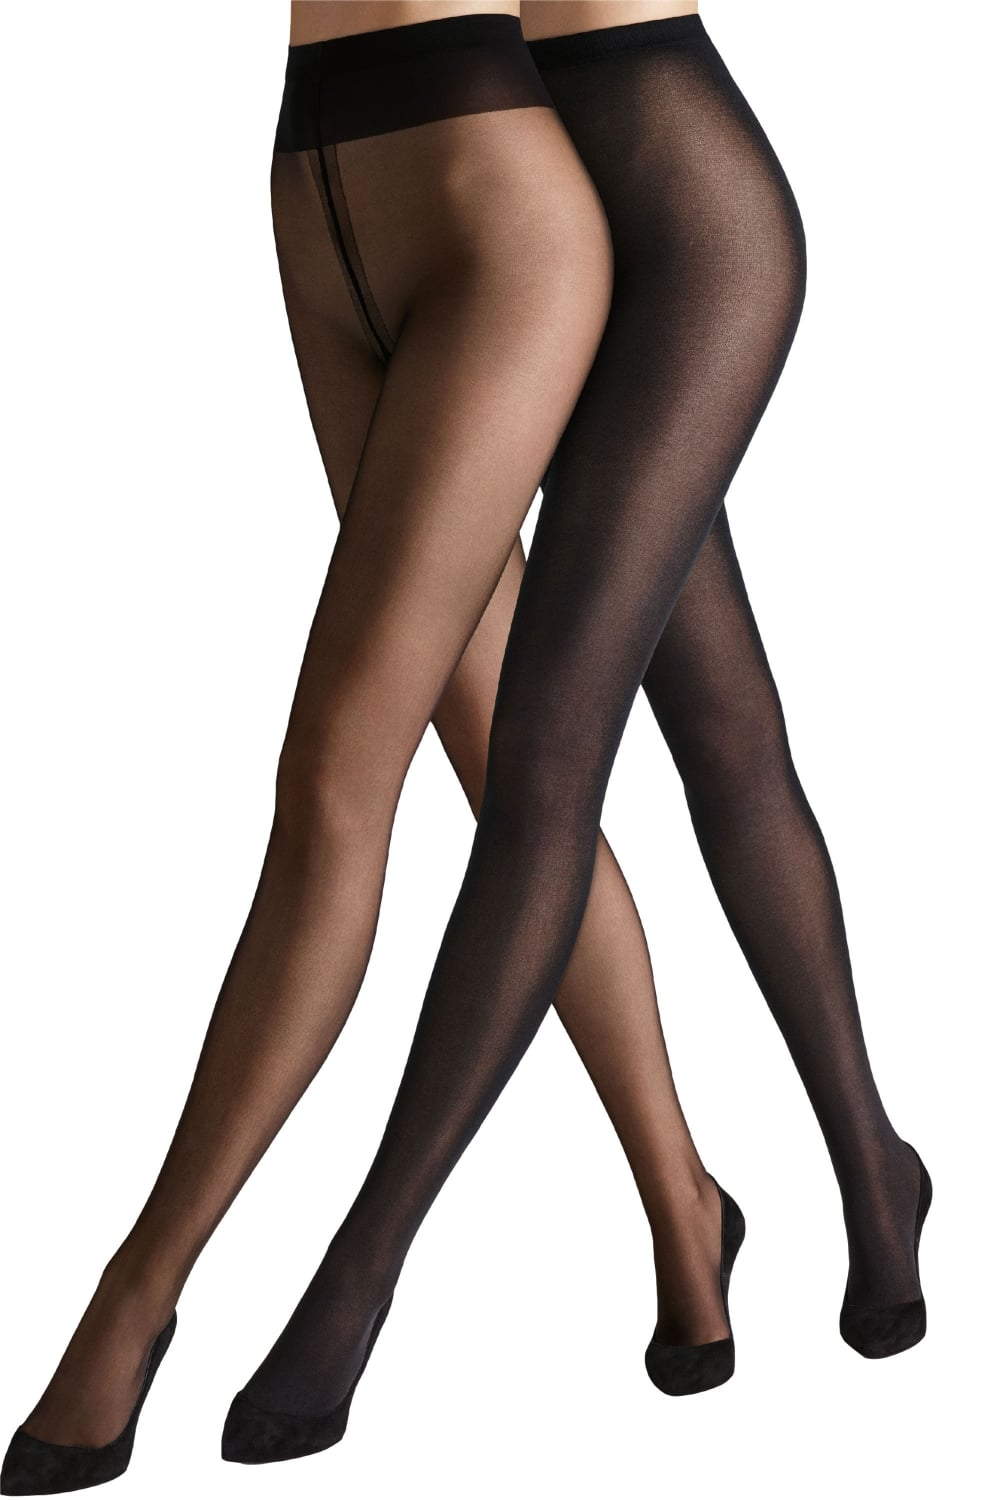 6231c312ddd Must Haves Duo Set - Individual 10 Tights And Velvet De Luxe 50 Tights